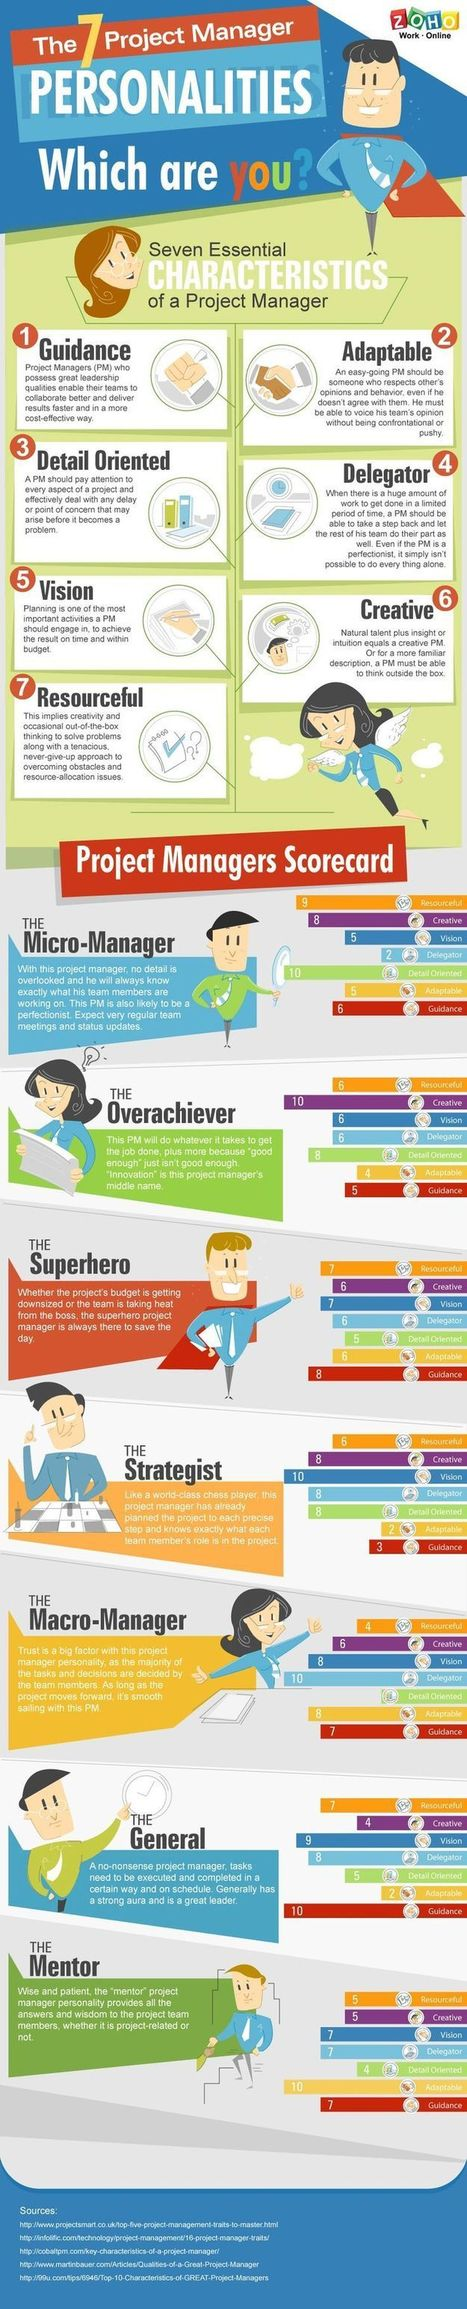 7 Project Manager Personalities-Which Are YOU? [Infographic] | ICT in Education Thessaloniki | Scoop.it